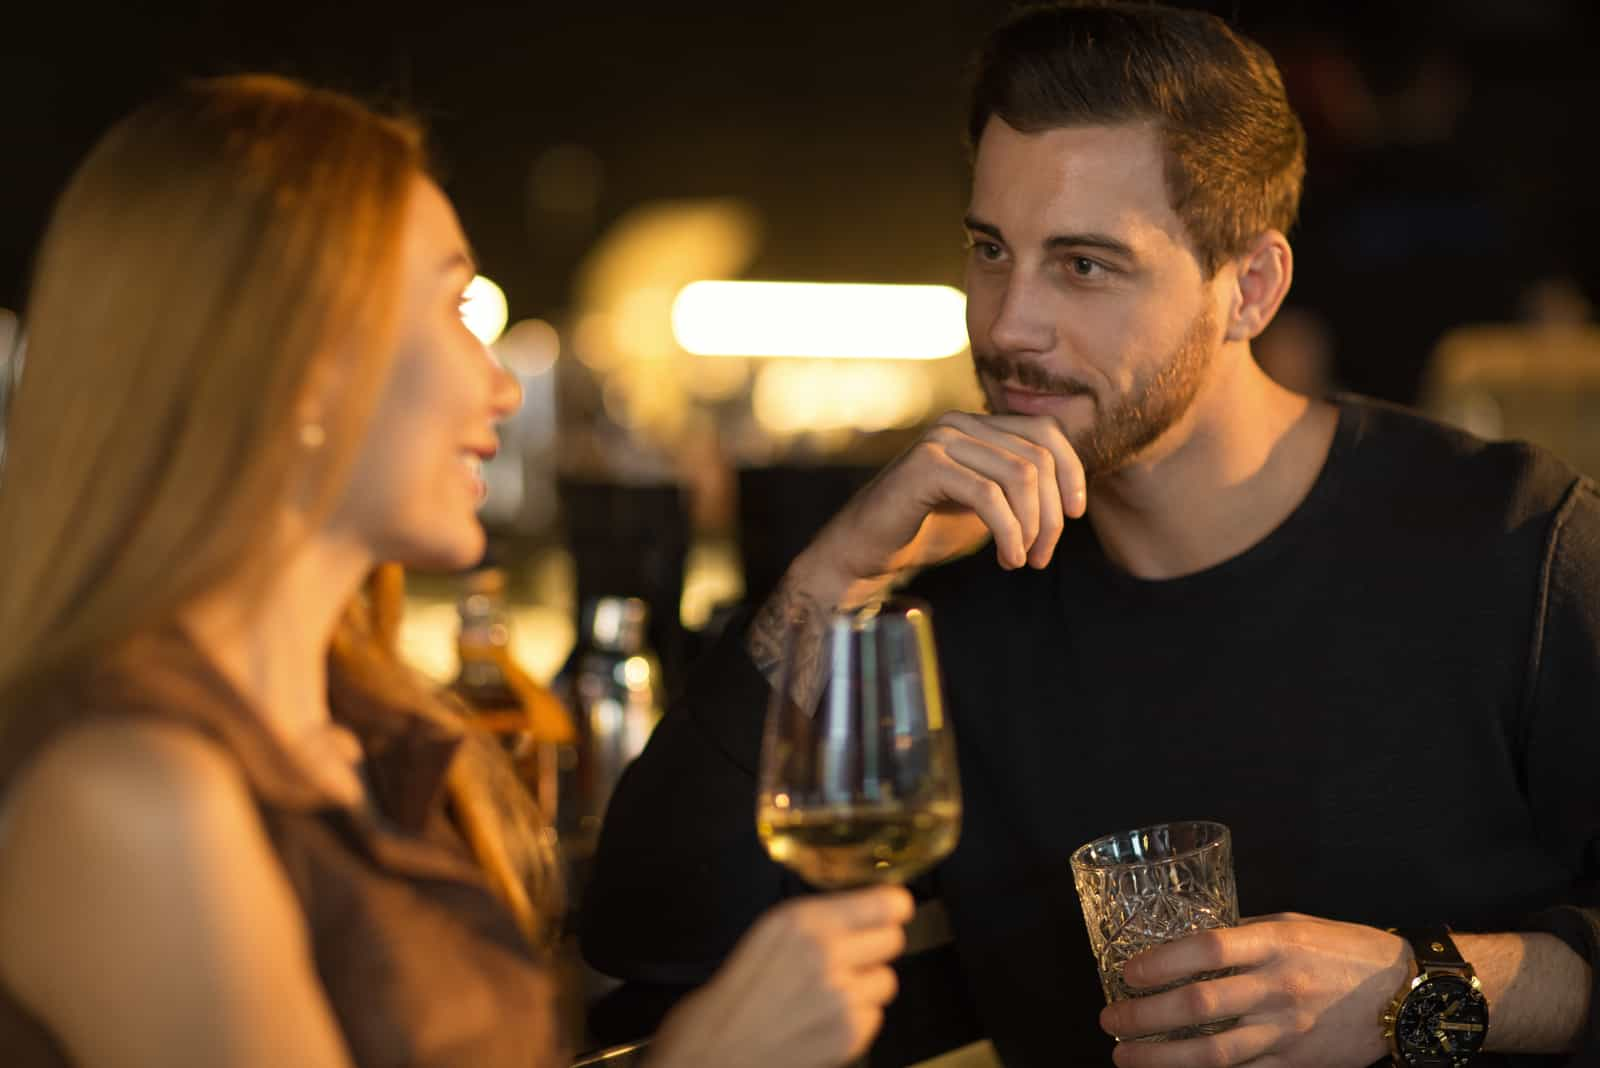 a man and a woman stand and talk while holding glasses of wine in their hands